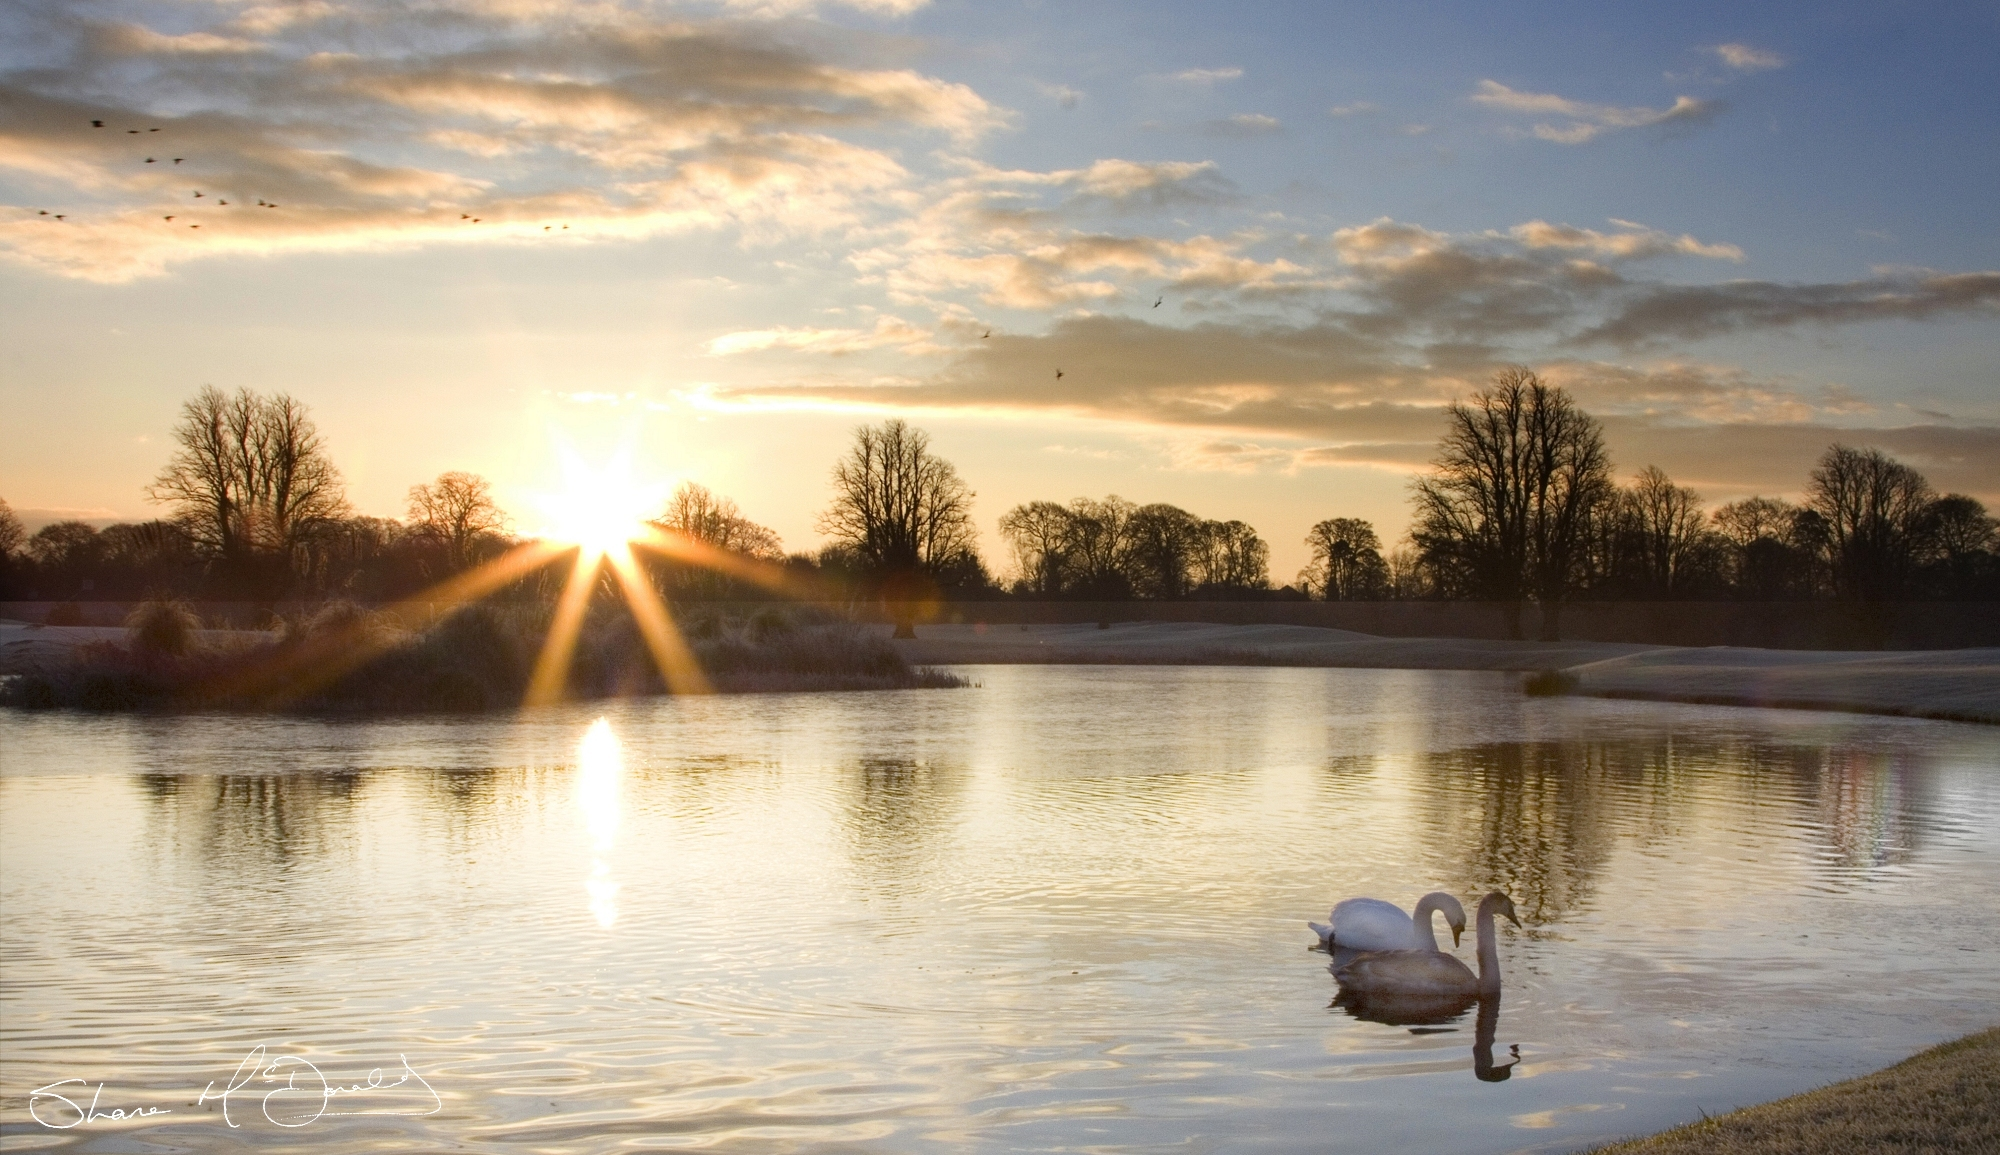 Morning Photography – Swans on the Lake